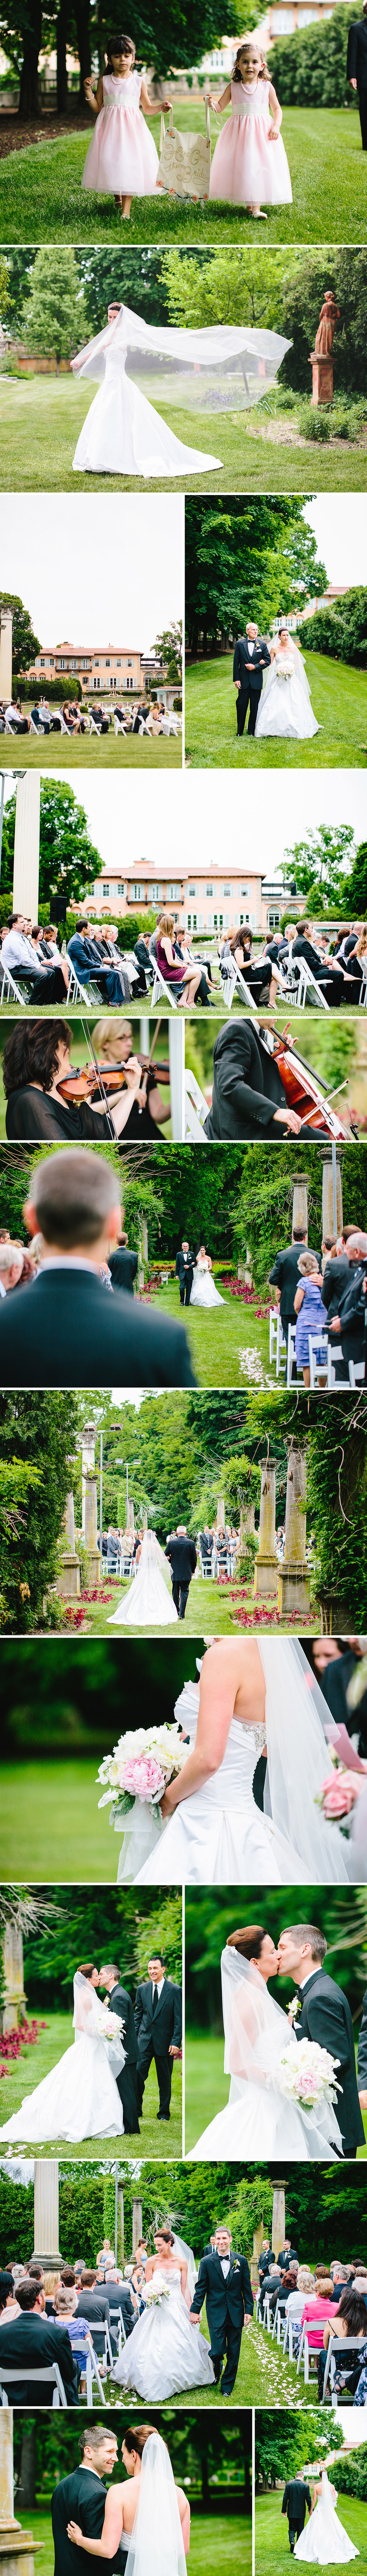 Chicago_Fine_Art_Wedding_Photography_hatfield3.jpg